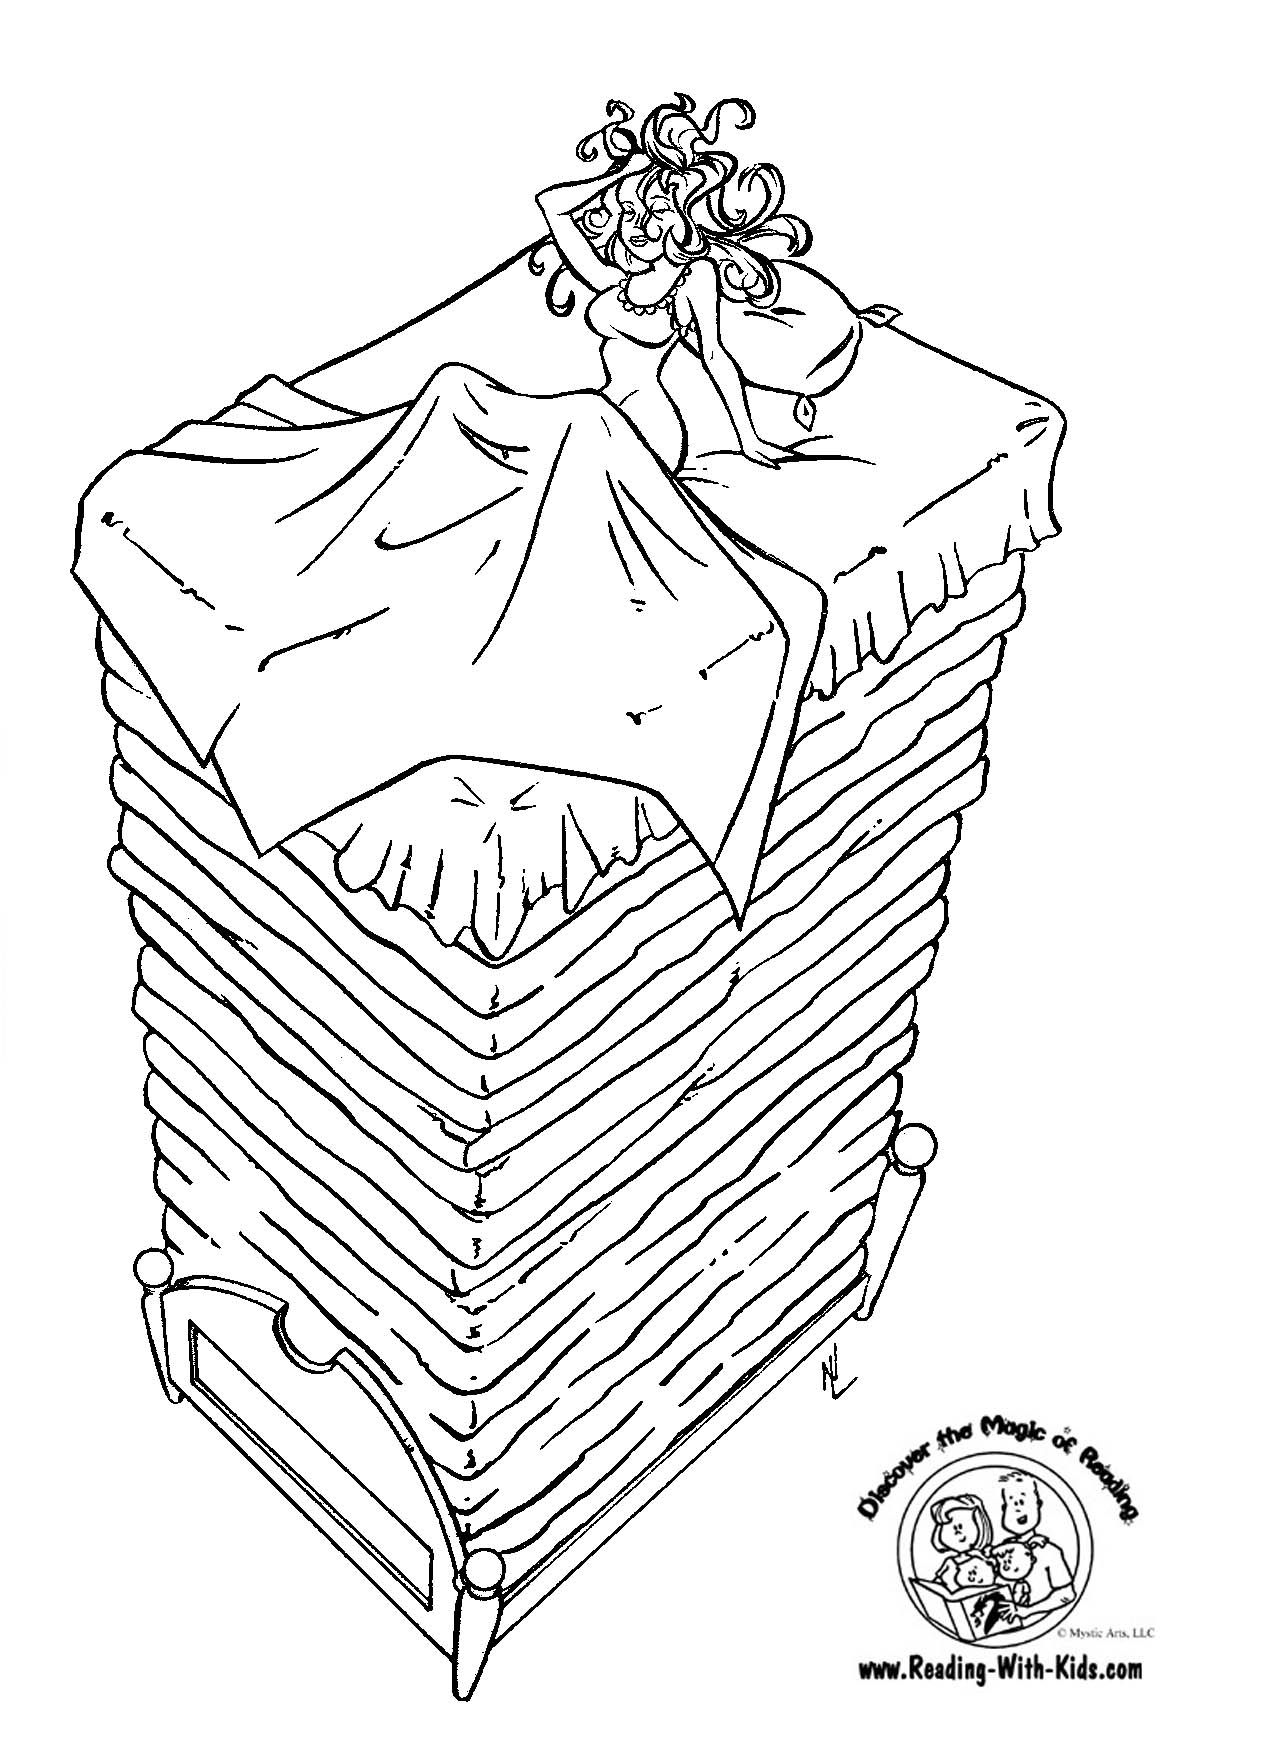 princess and the pea coloring page. princess and the pea fairy tale coloring page a